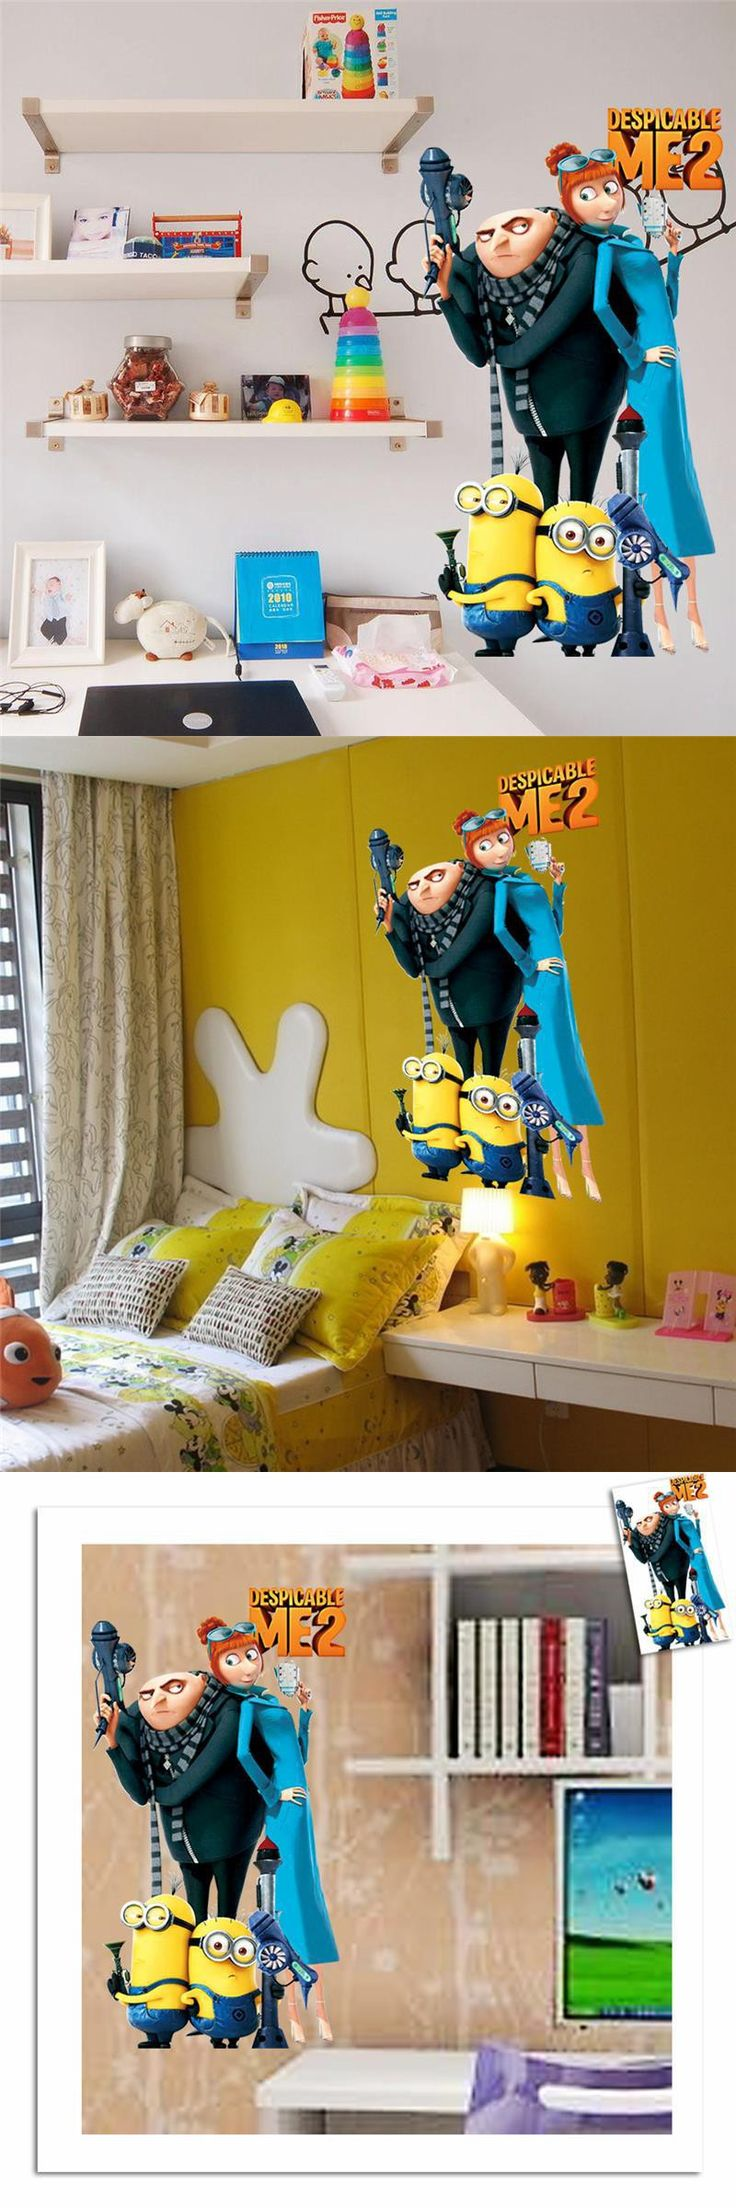 Les 25 meilleures ides de la catgorie film minions sur pinterest minions film children room wall stickers home decor diy pvc 1409 despicable me stickers 3d cartoon children gift wall art 35 amipublicfo Images